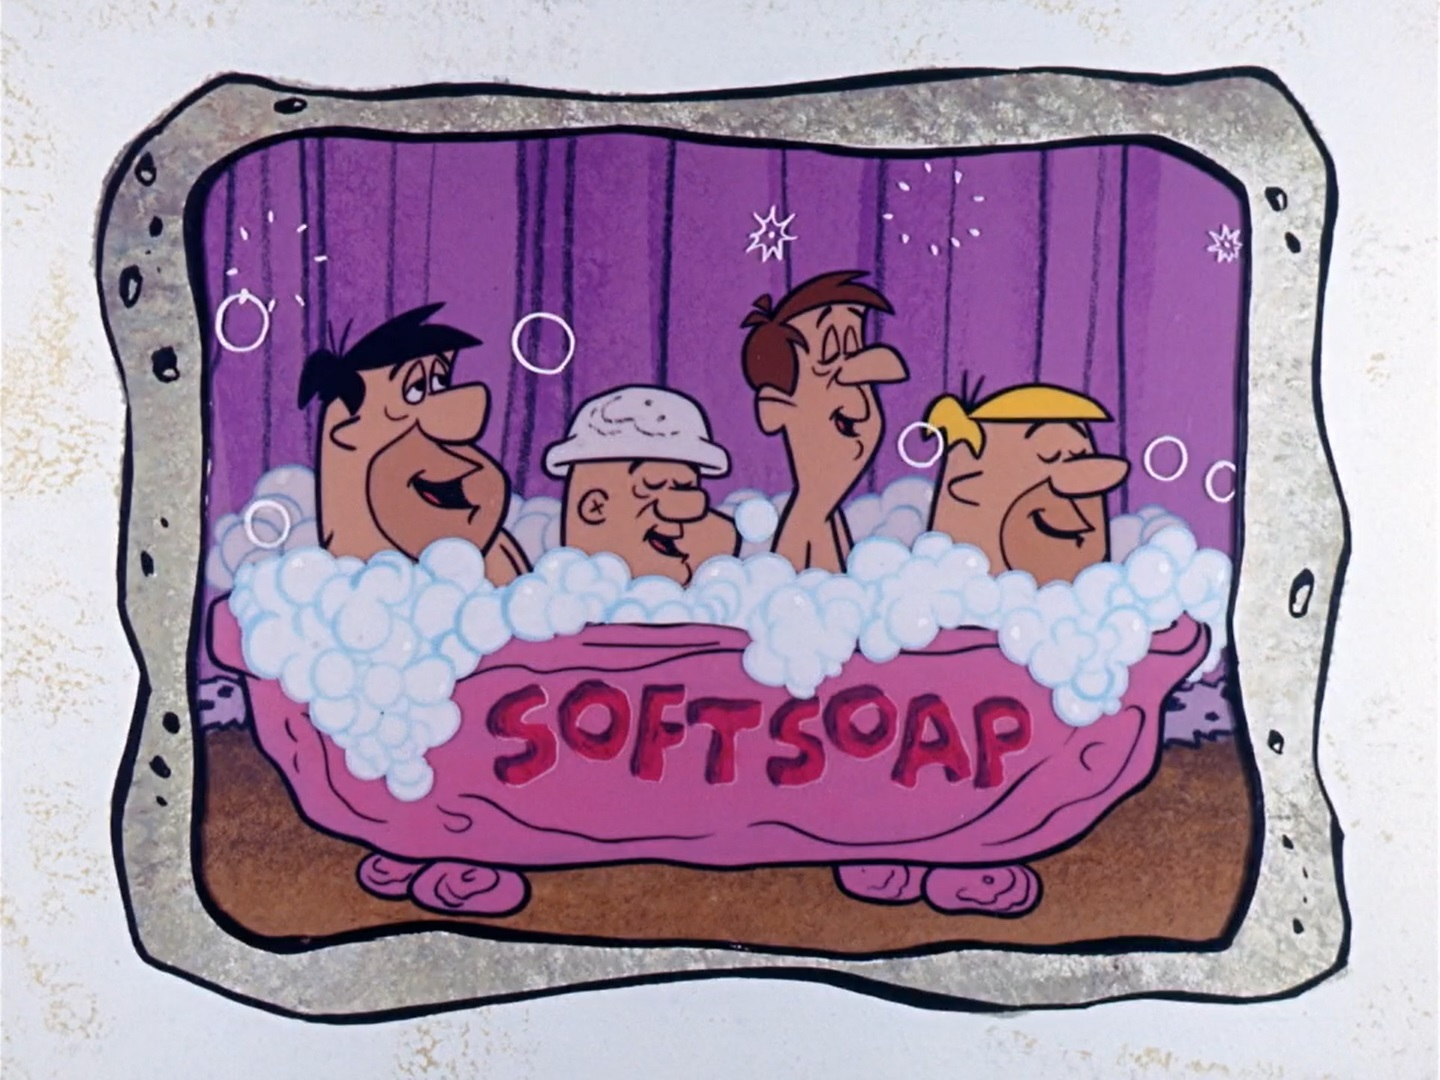 The Soft Soap Jingle